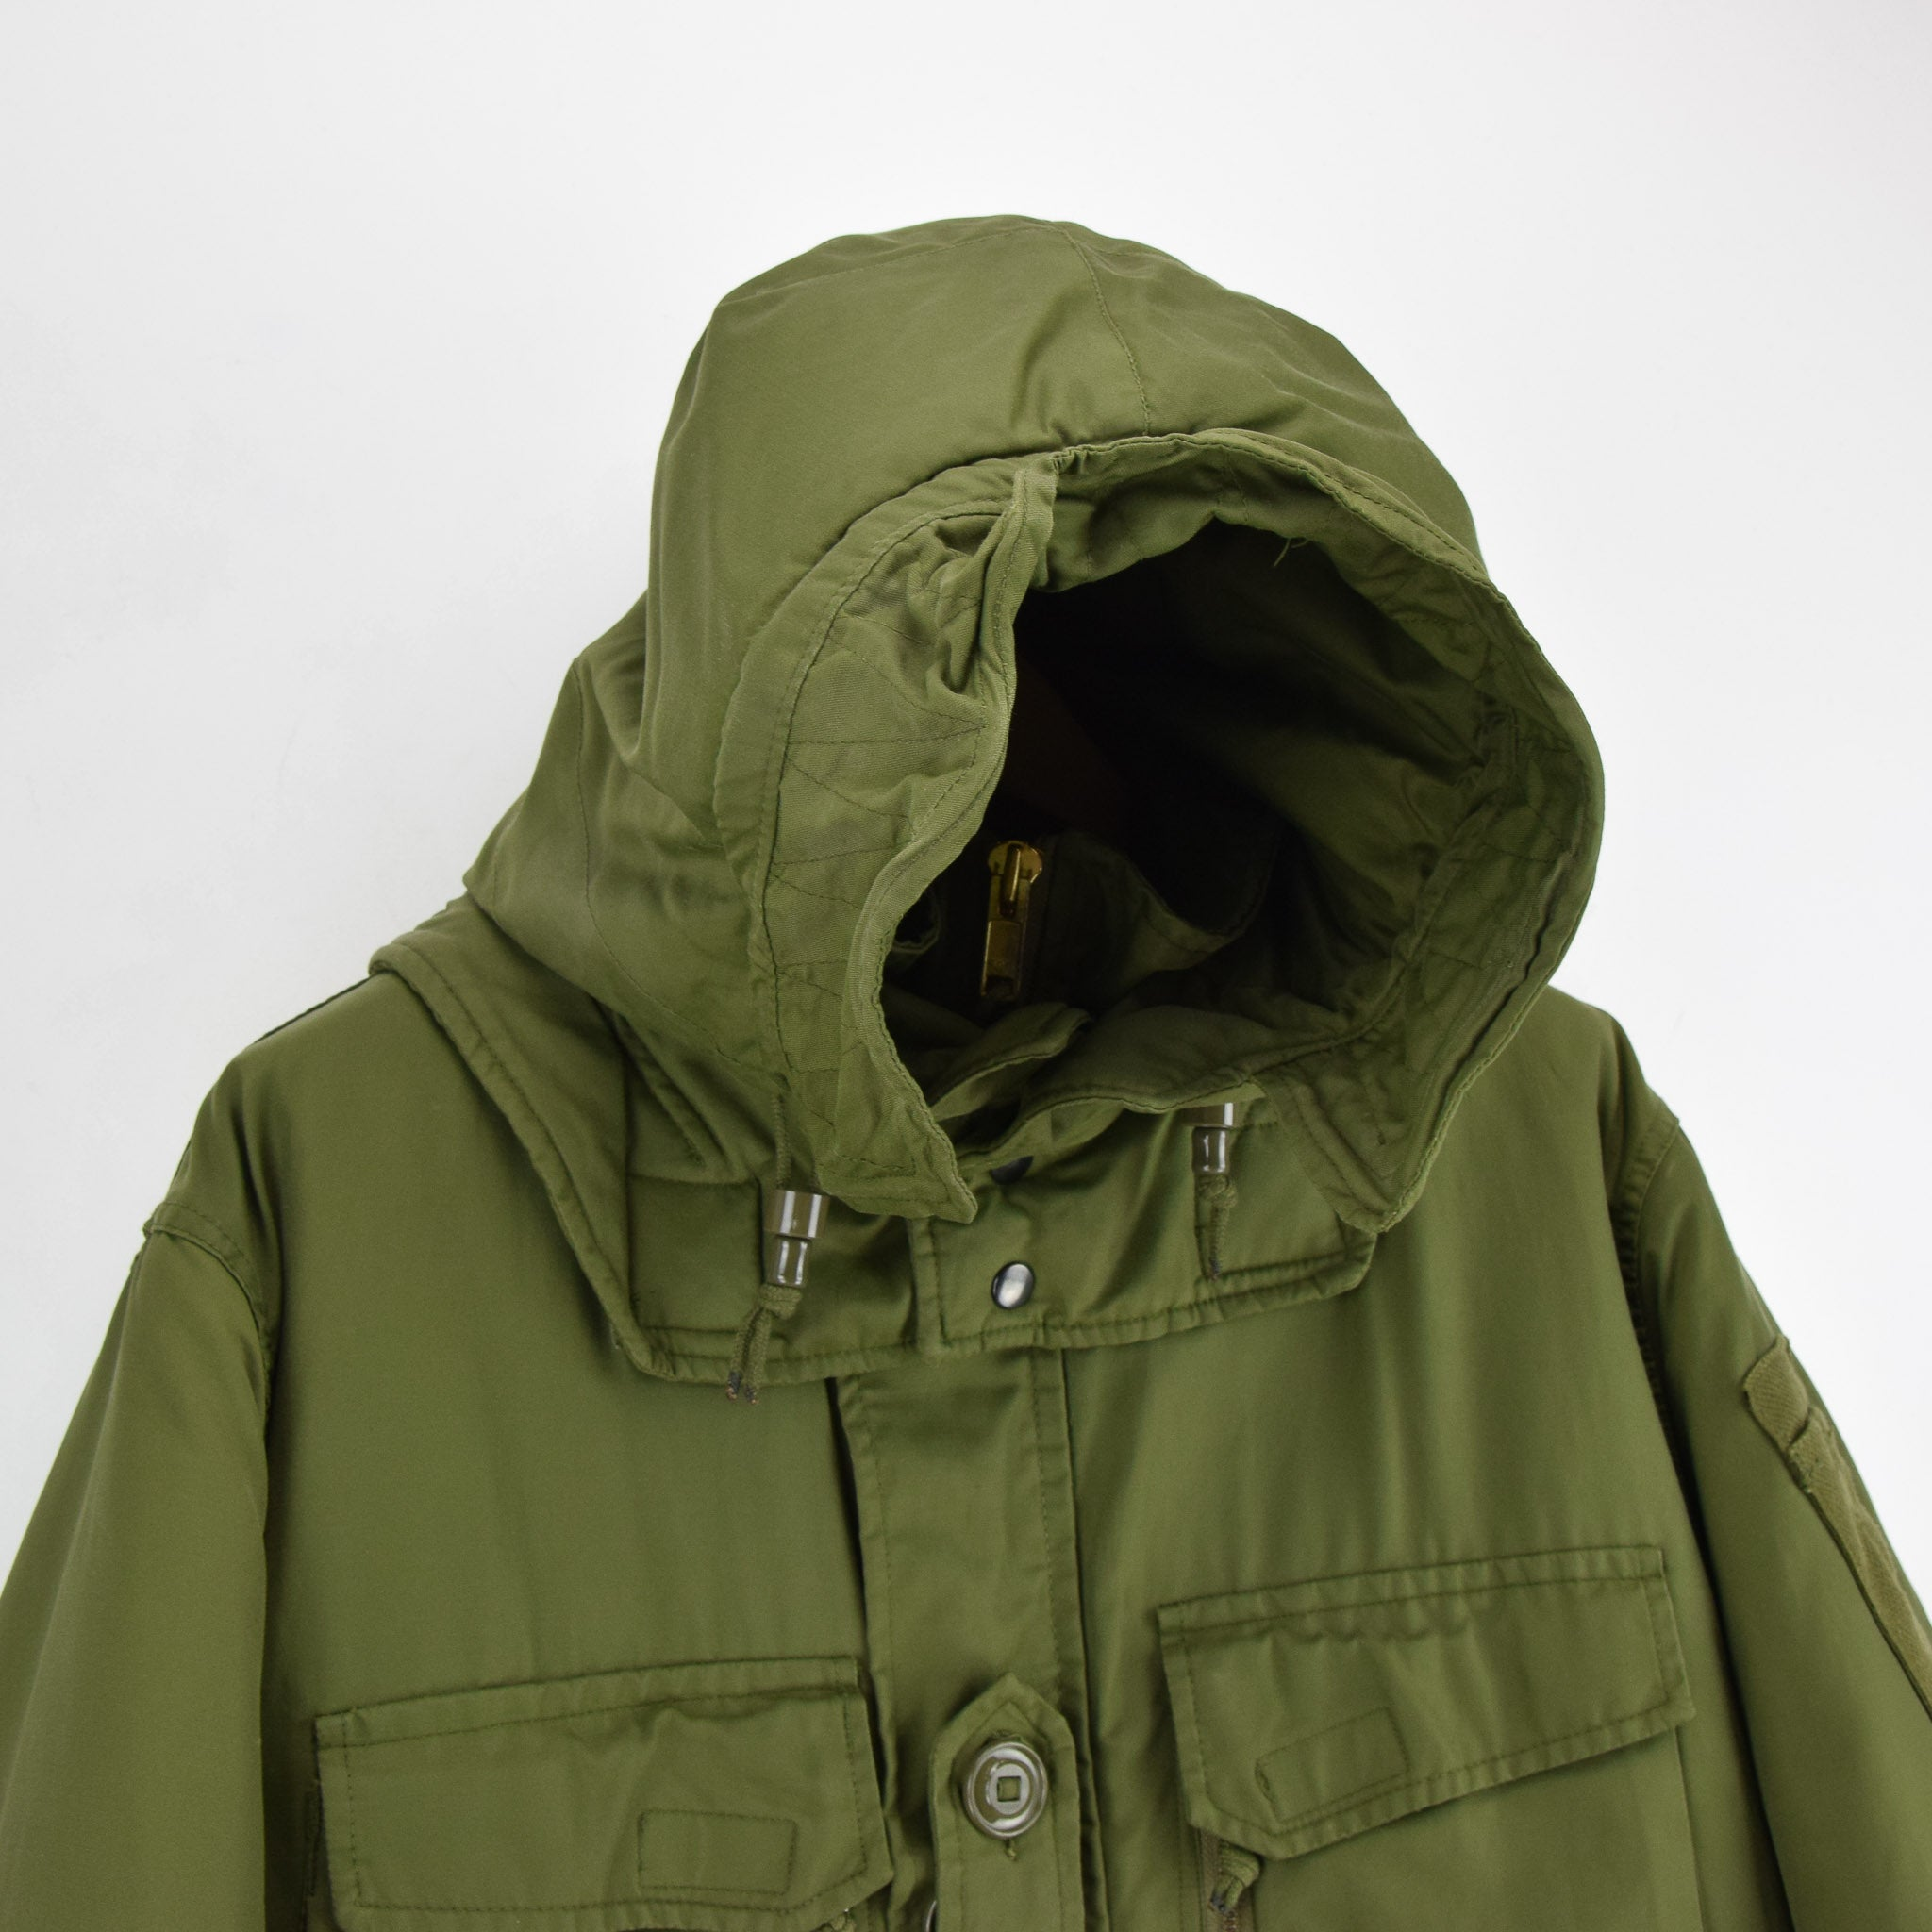 Canadian Army Arctic Winter Parka Heavy Duty Jacket Olive Green L